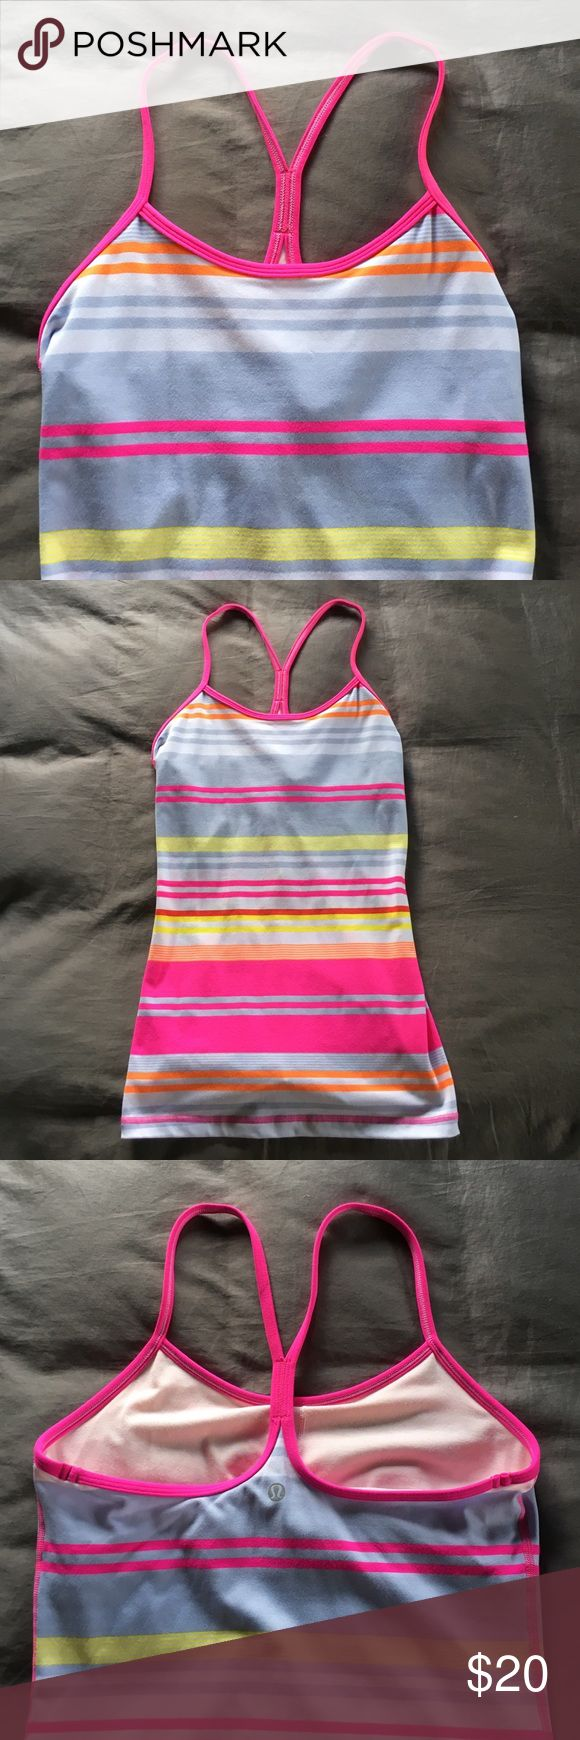 Lululemon Power Y Tank Lululemon Power Y Tank, used, but still in excellent condition! Removable bra cups (not included, but you can get them at any Lululemon store). Lululemon Athletica Tops Tank Tops